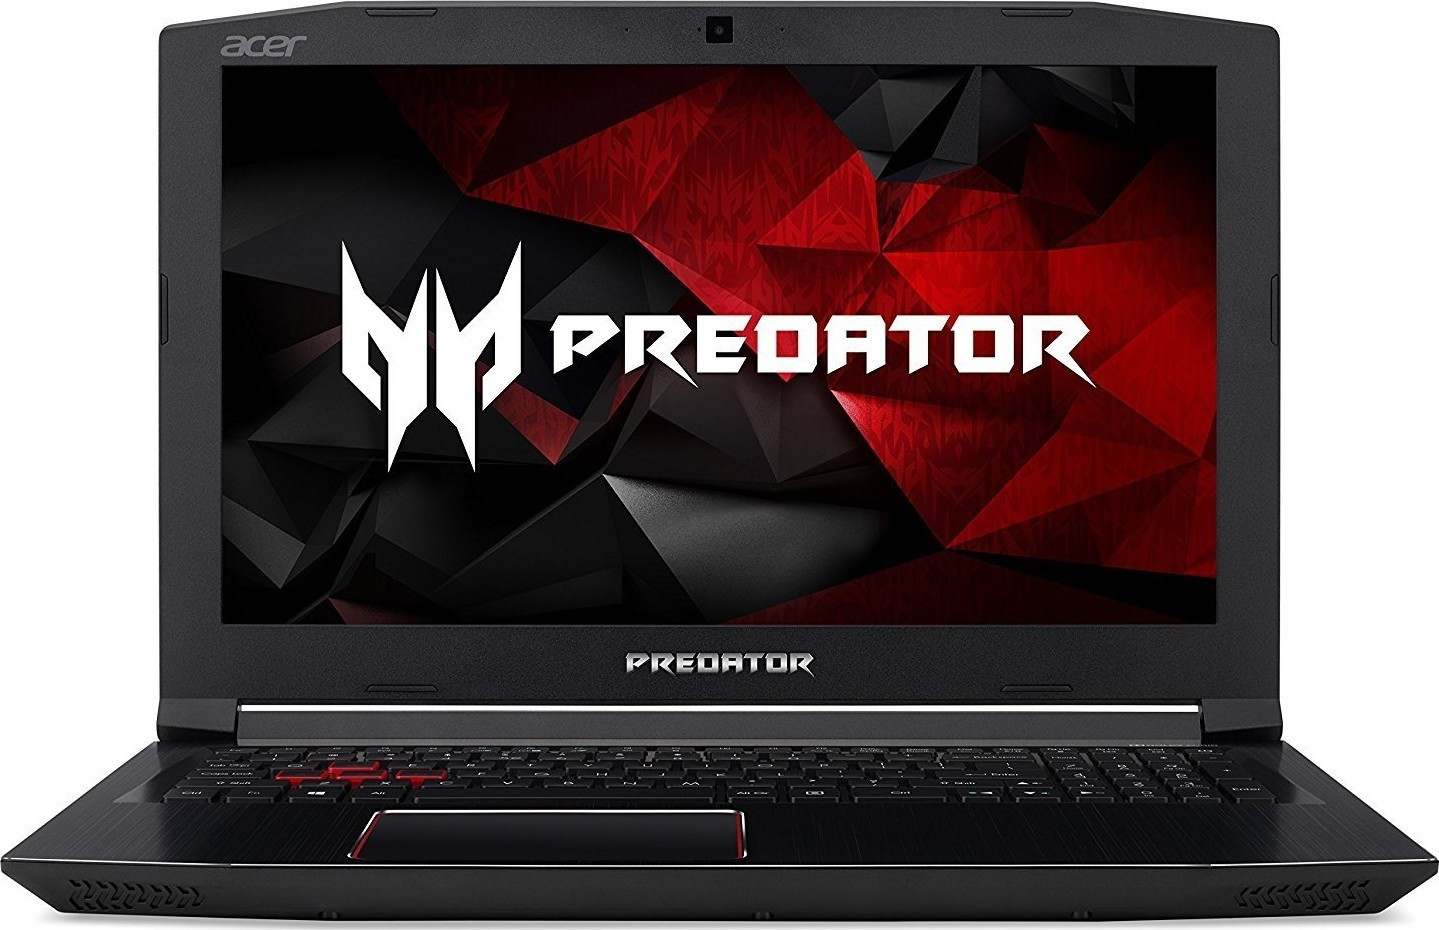 Acer PREDATOR 300 (PH317-51-78L5)/WIN10